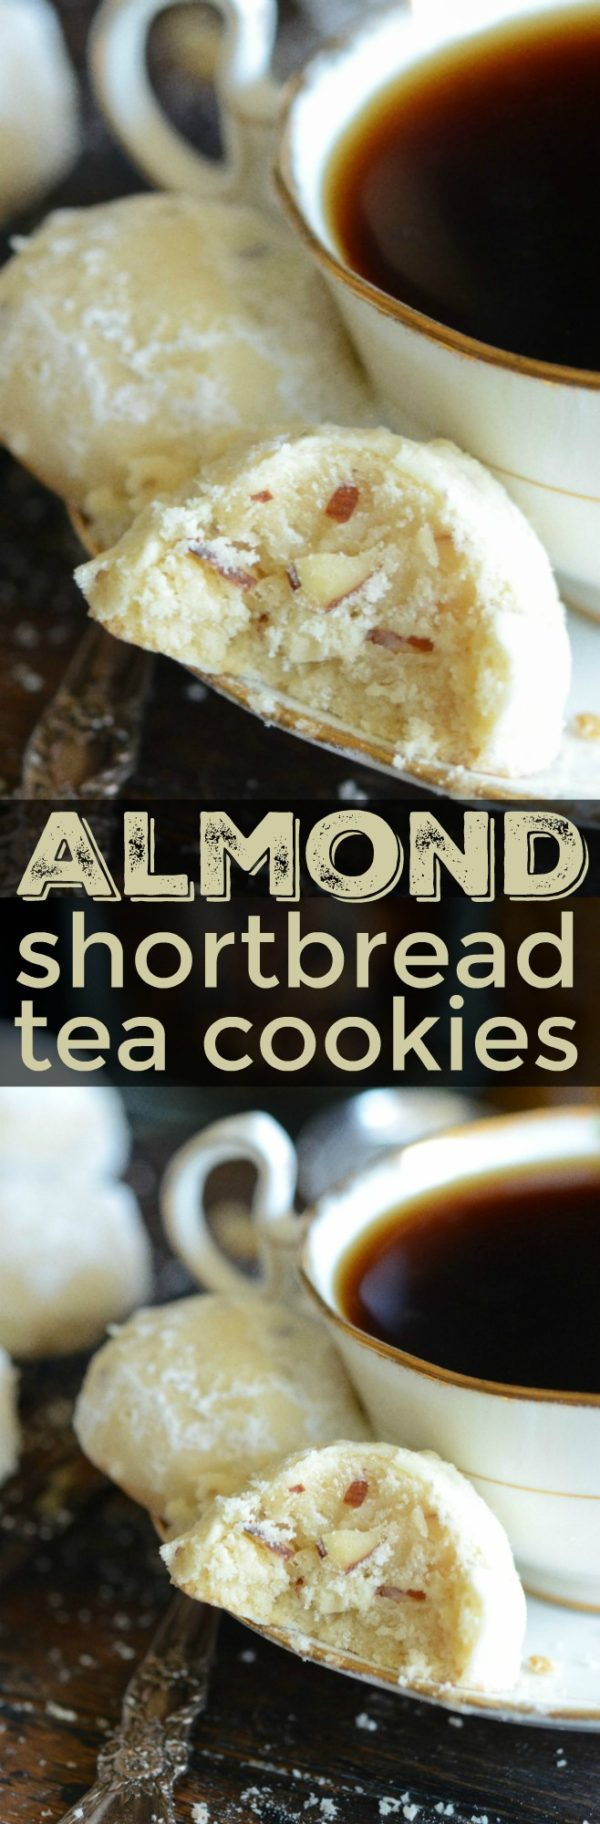 An Almond Shortbread Tea Cookie with a Bite Taken Out to Show the Inside